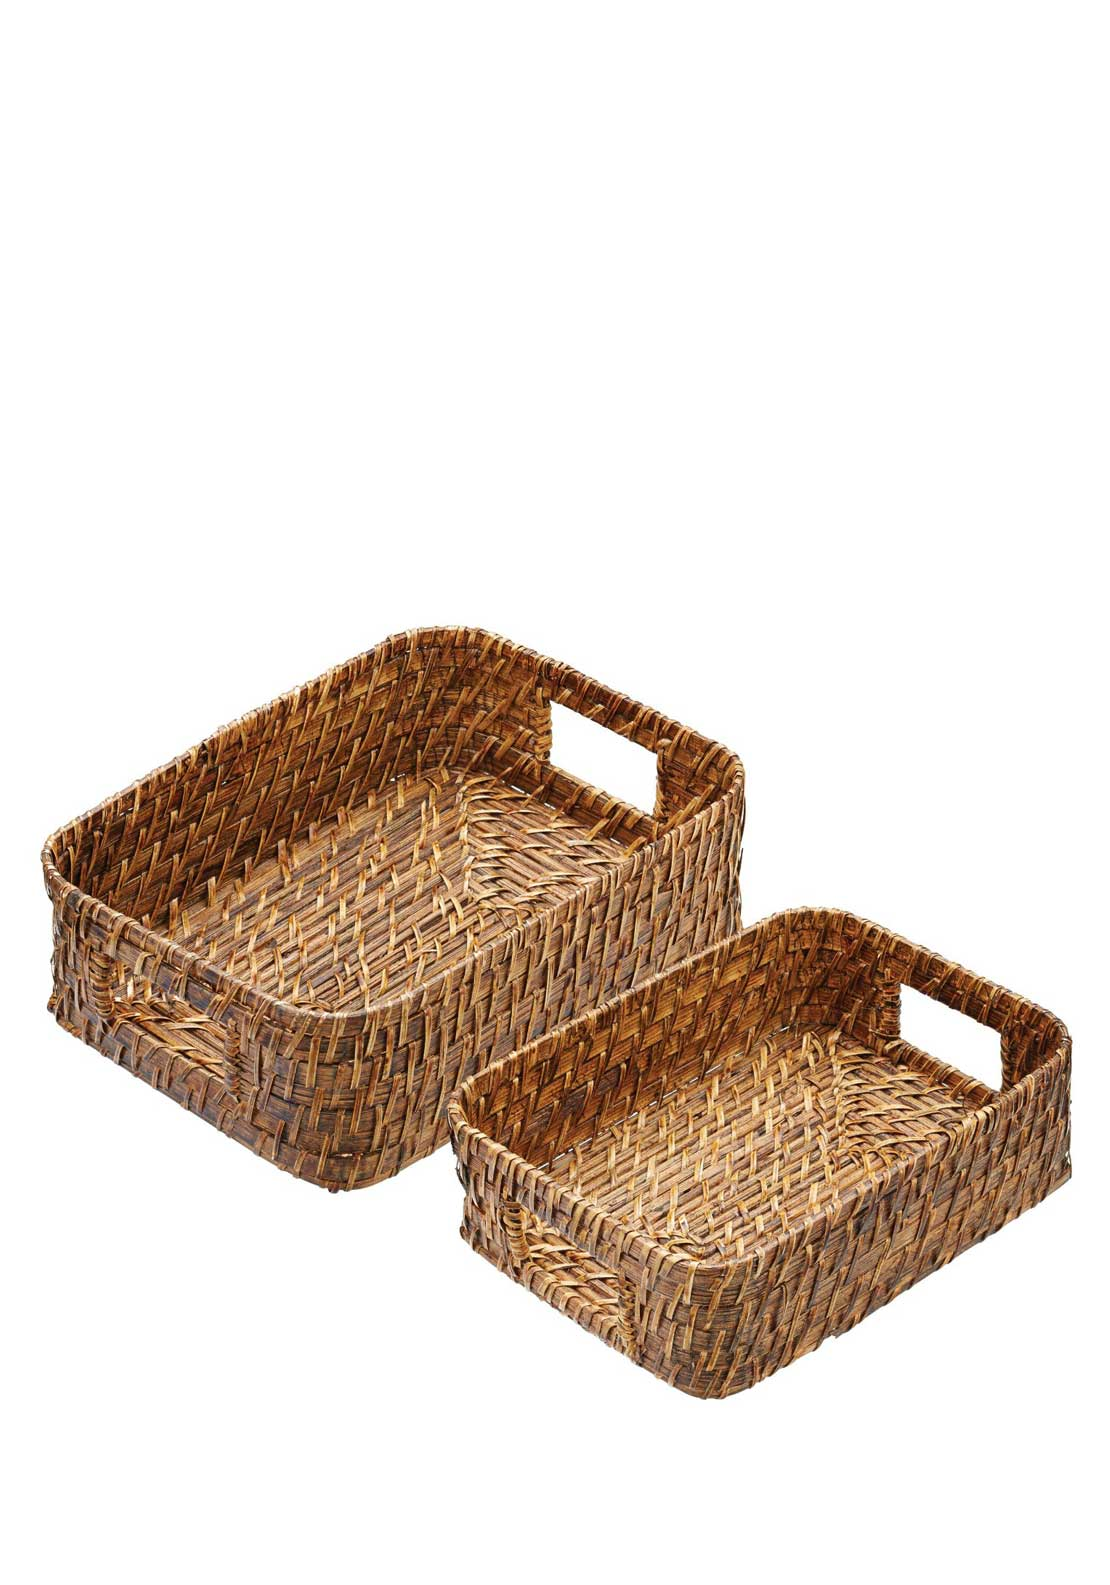 Kitchen Craft Masterclass Bamboo Serving Baskets, Set of 2